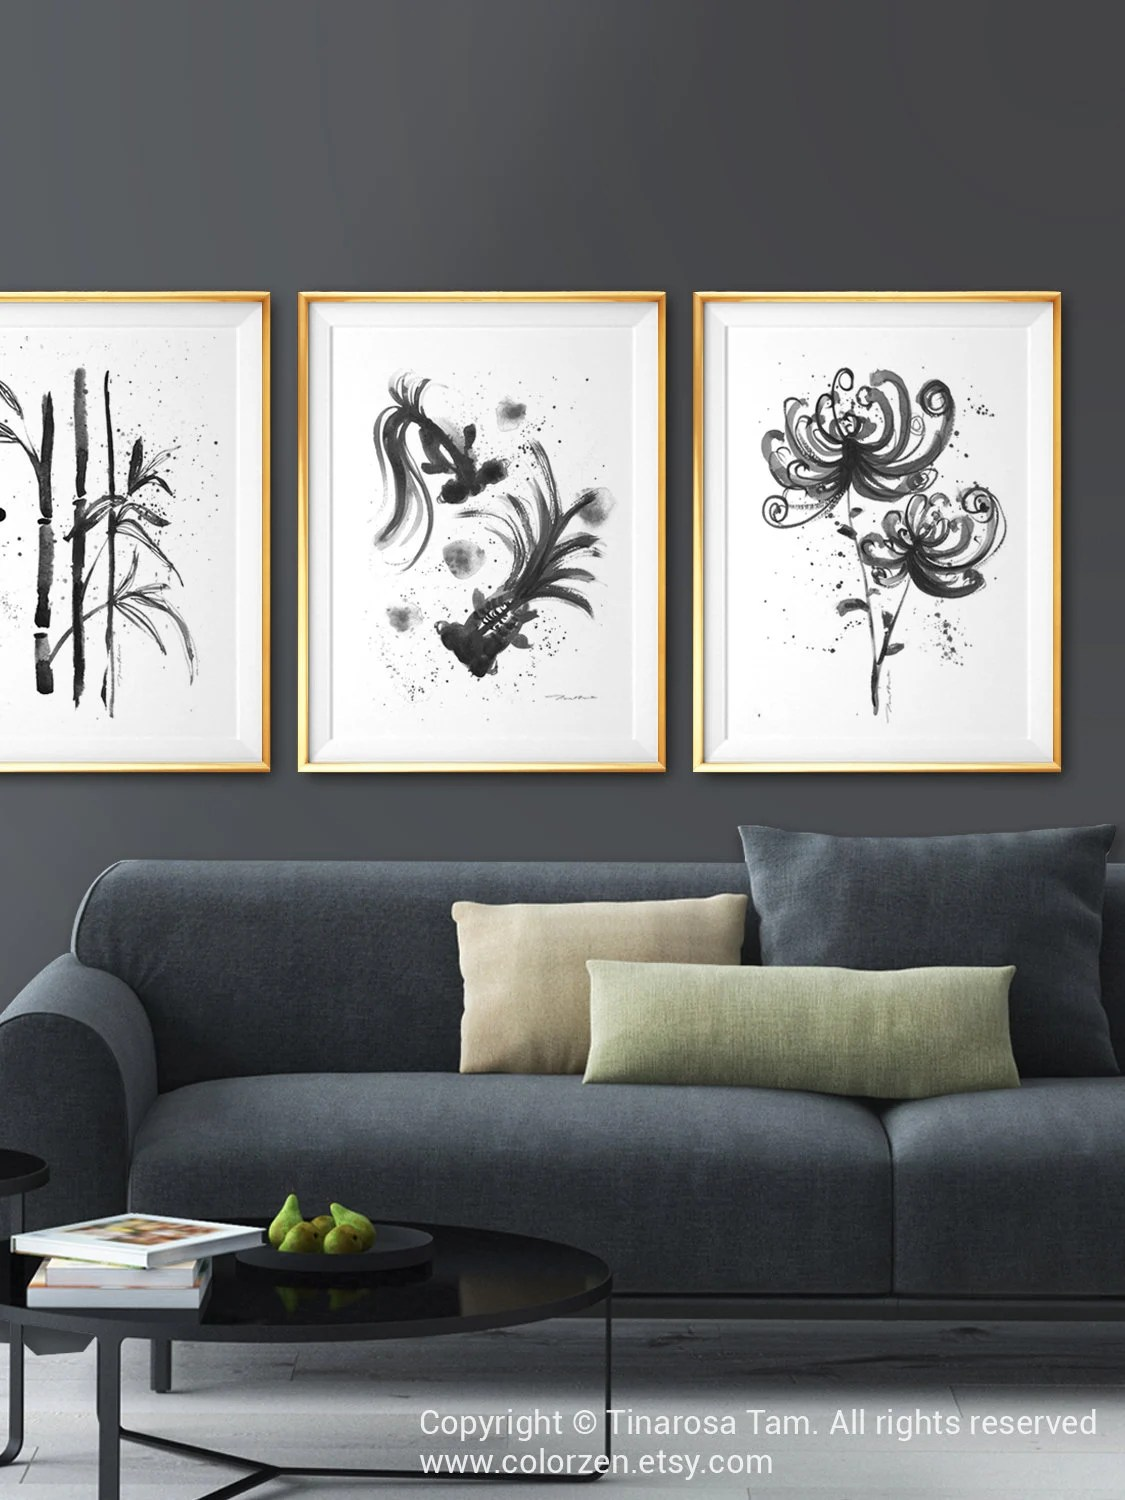 Black And White Artwork For Bedroom Botanical Print Set Of 3 Prints Asian Wall Art Black And White Art Asian Decor Living Room Decor Chinoiserie Art Bedroom Wall Art Bamboo